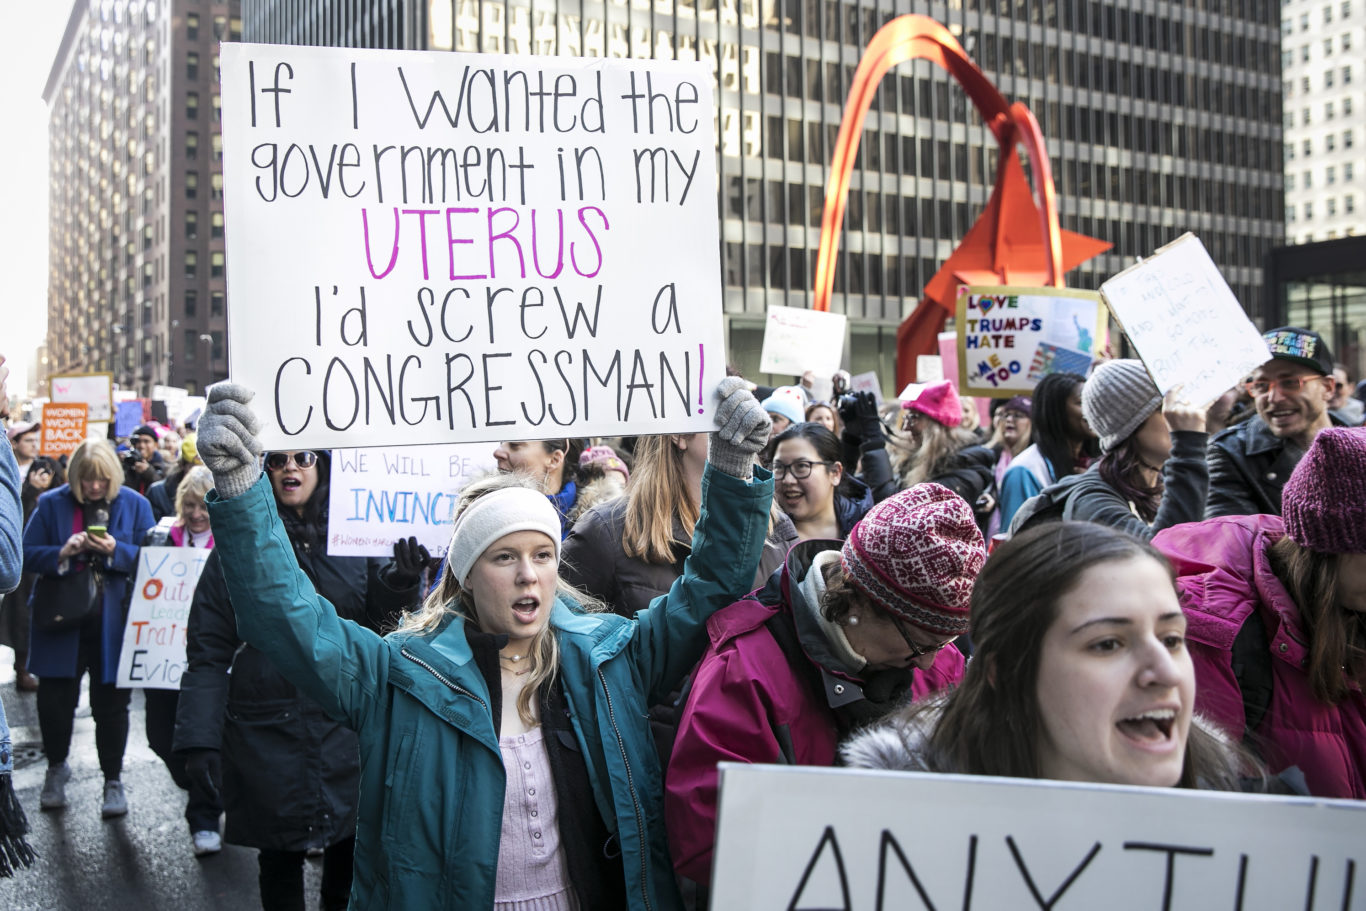 A woman's witty sign in Chicago on Saturday (Ashlee Rezin/AP)